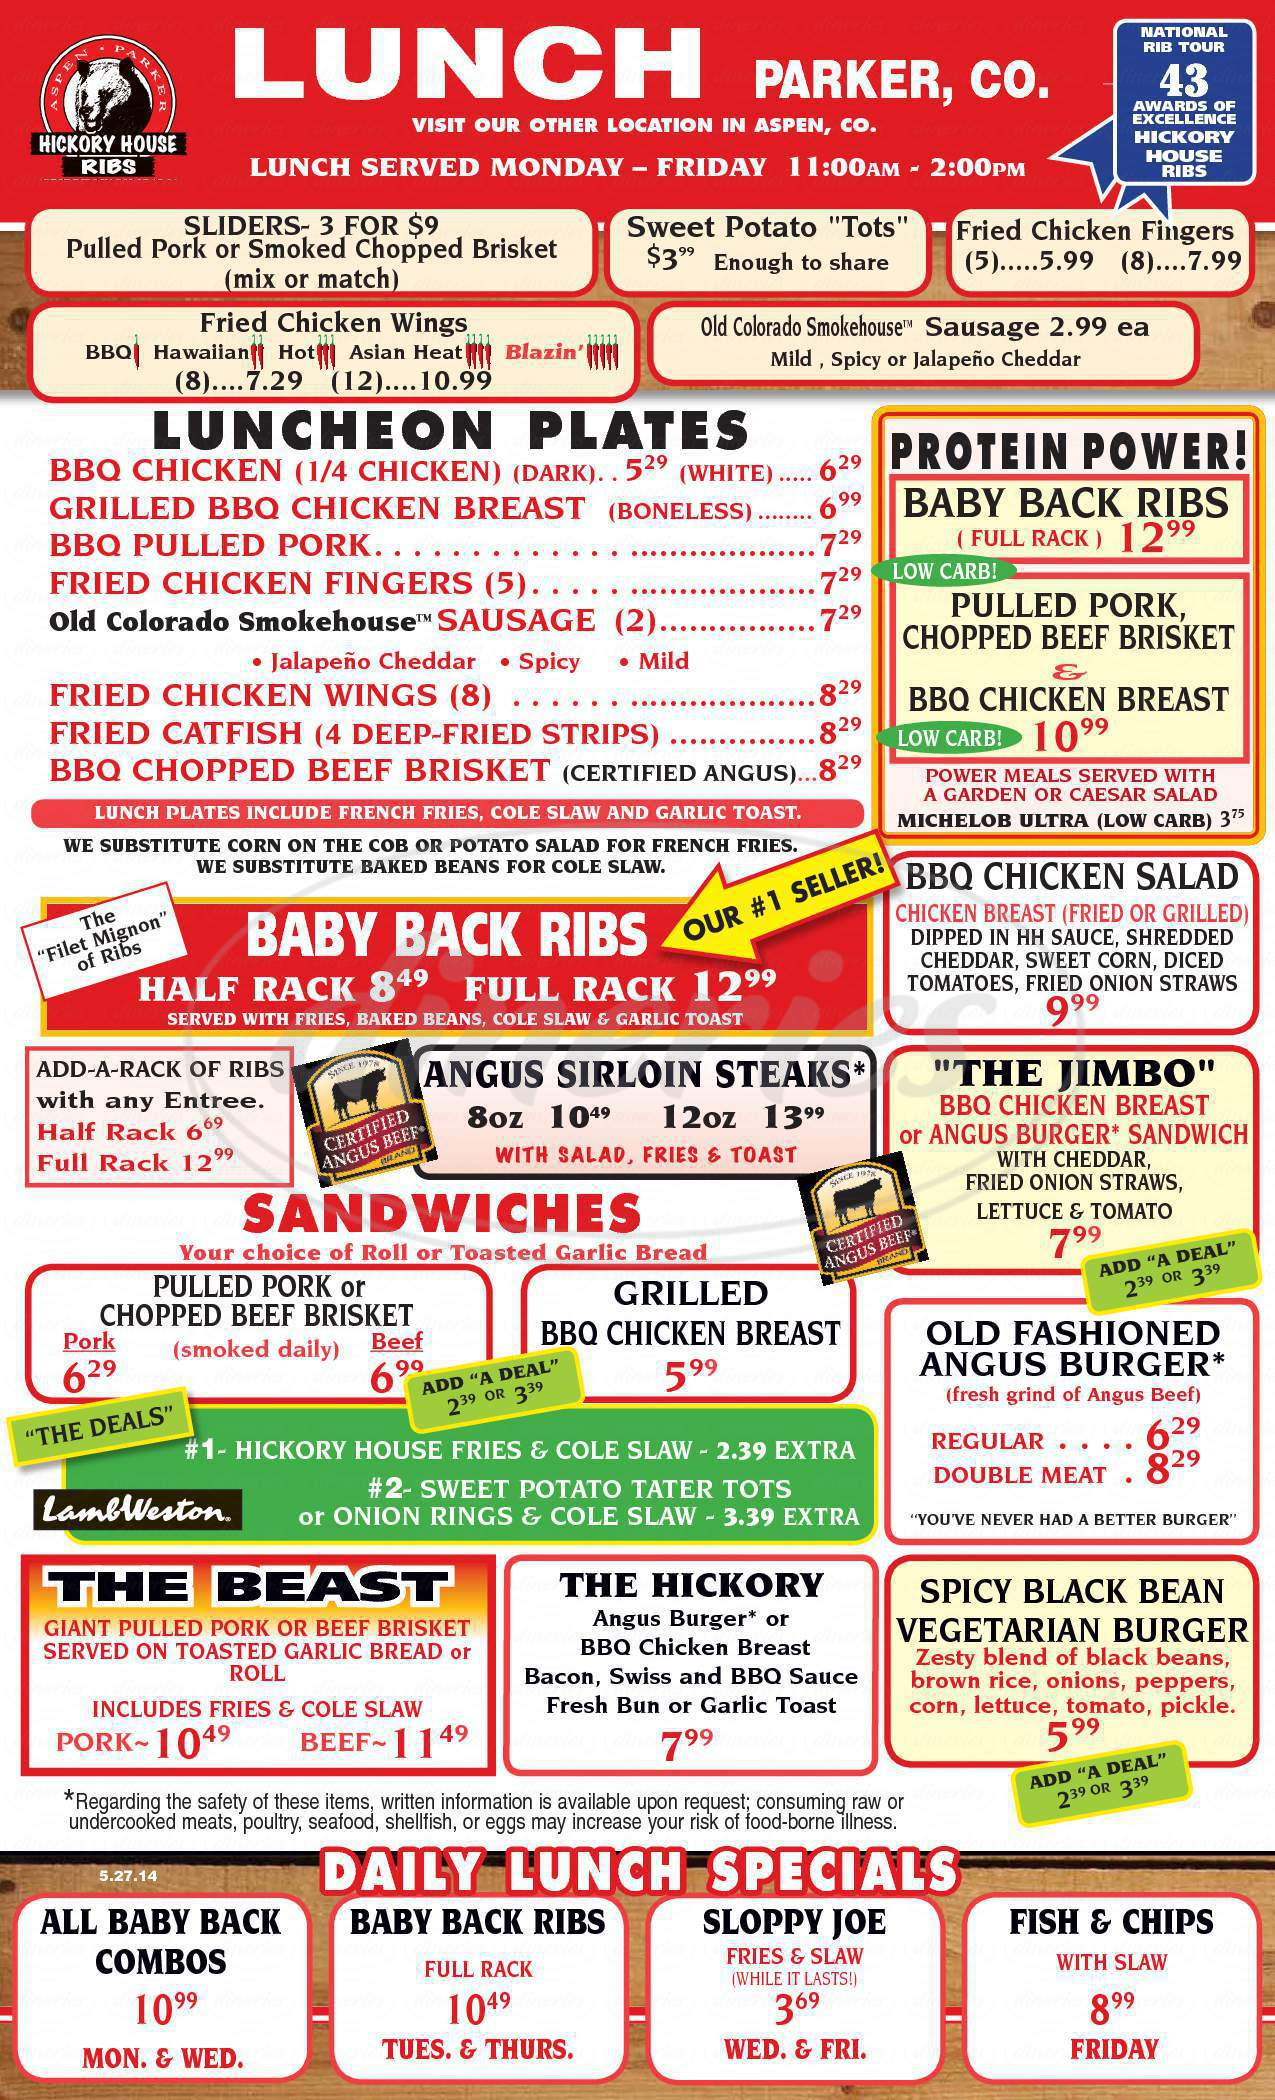 menu for Hickory House Ribs